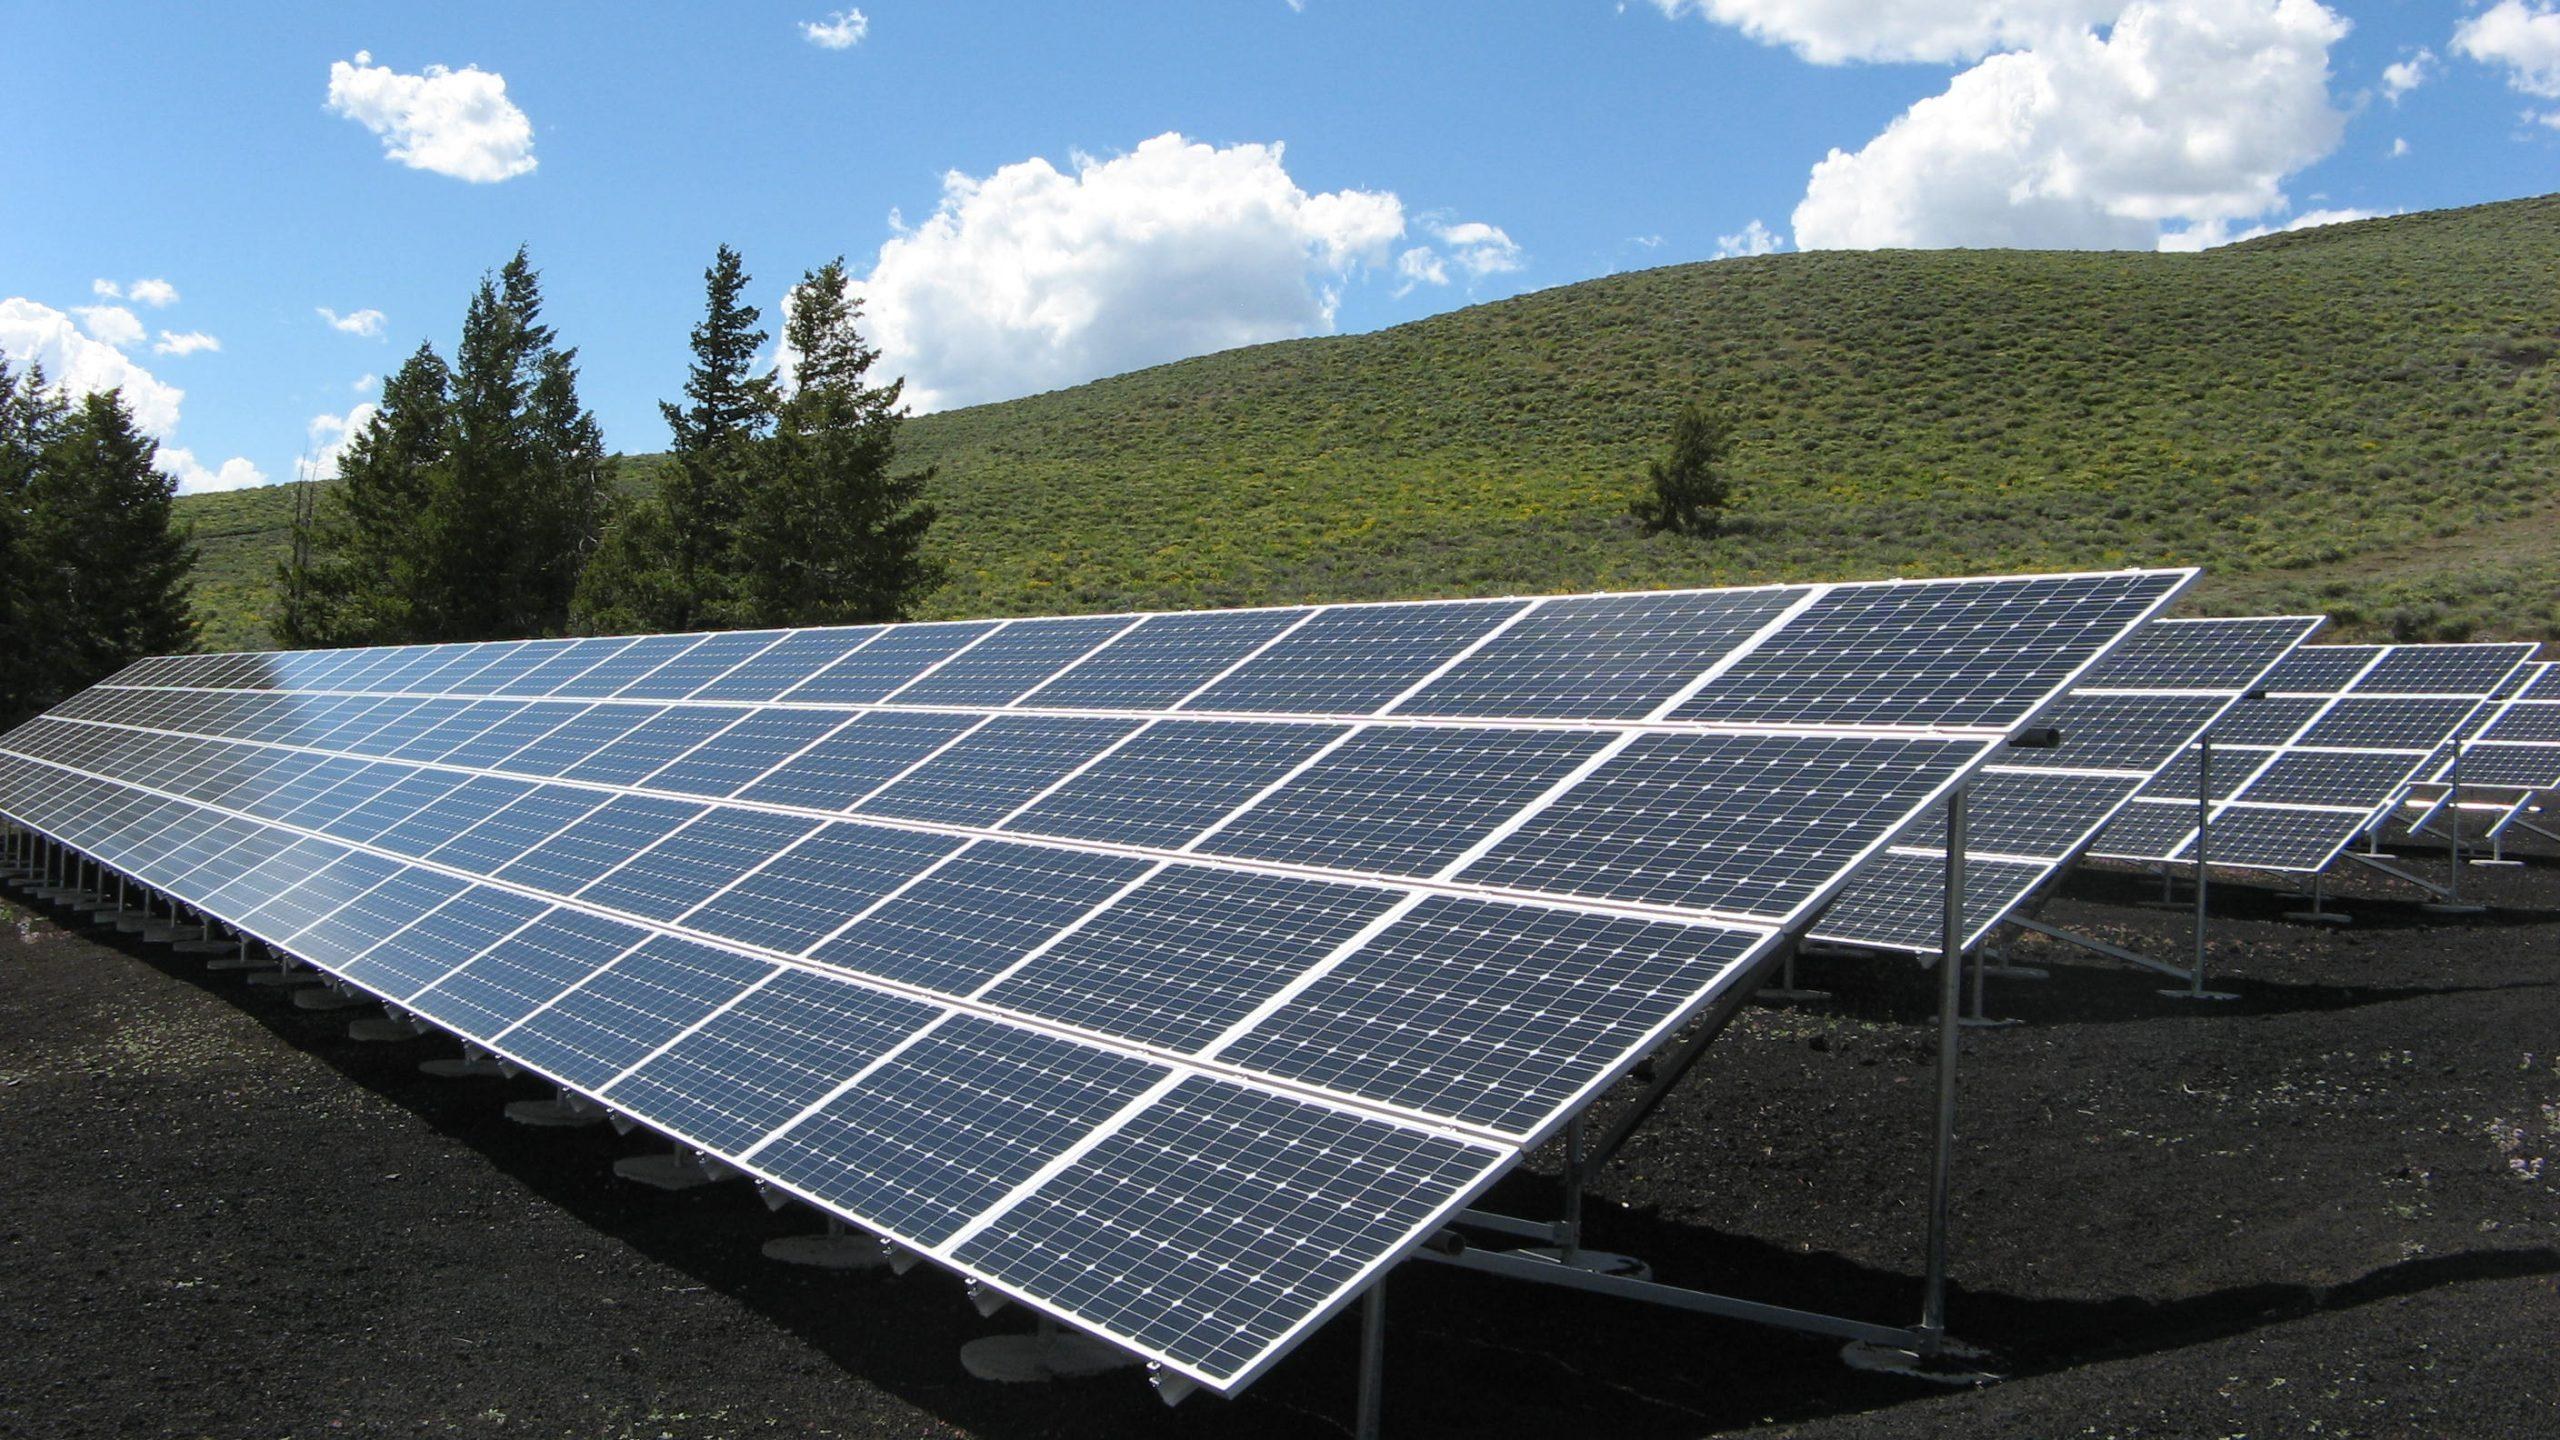 An array of solar panels sits in a field.